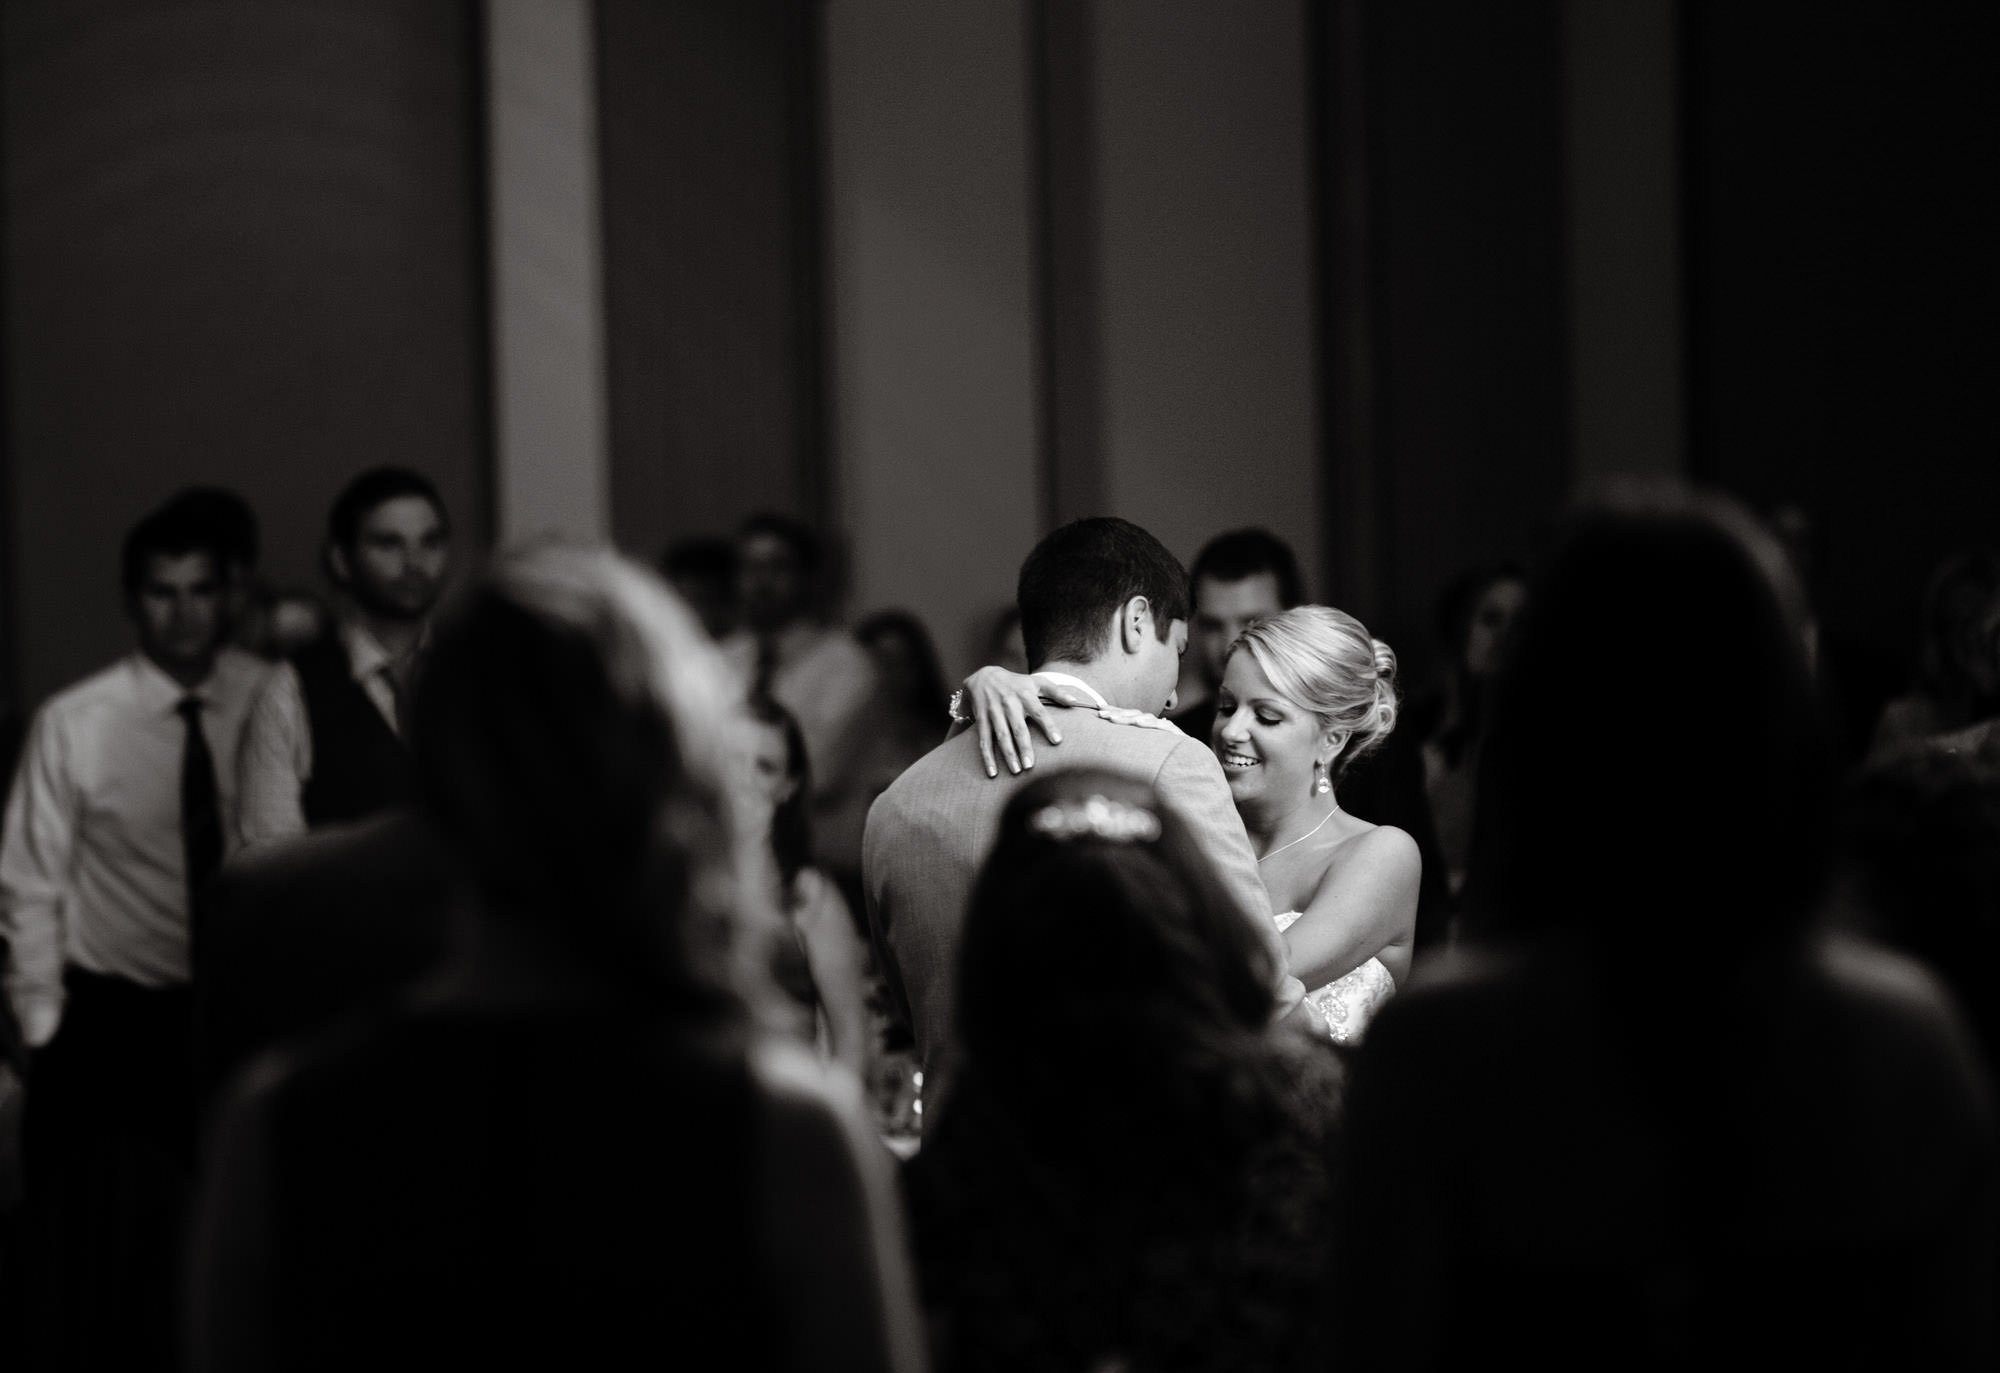 The couple shares their first dance during their Nittany Lion Inn wedding.